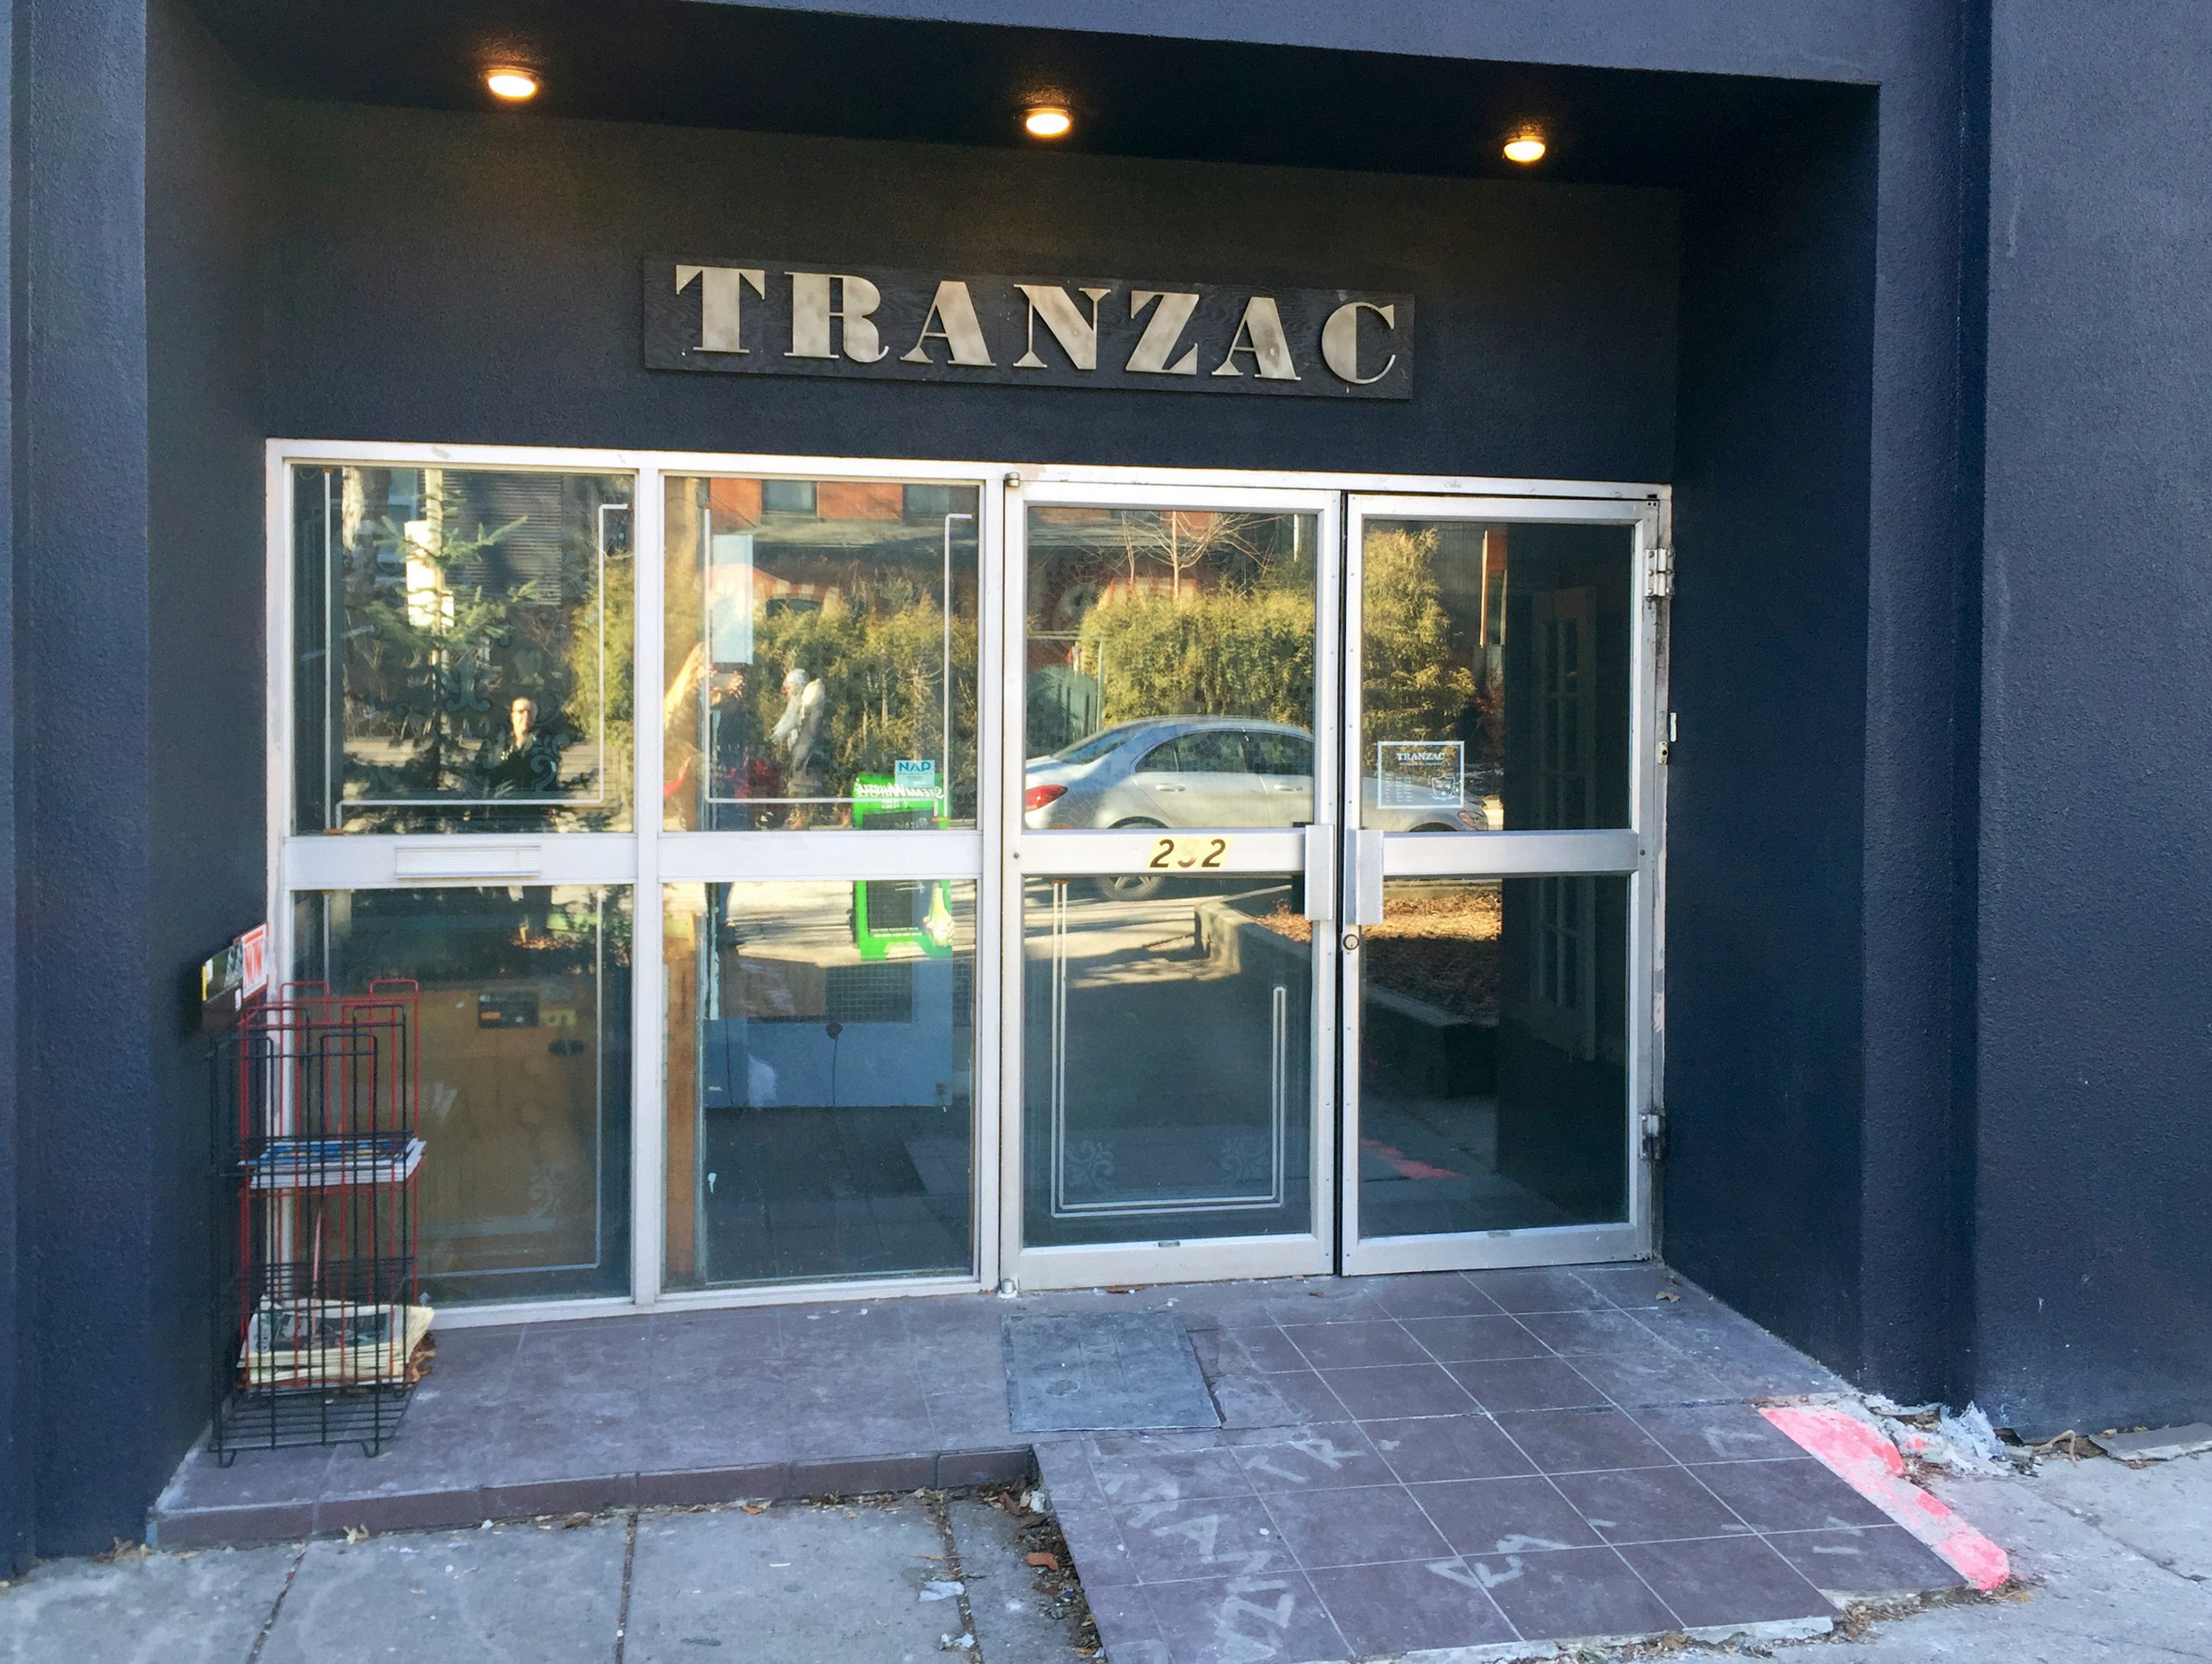 Picture of the front entrance of the Tranzac